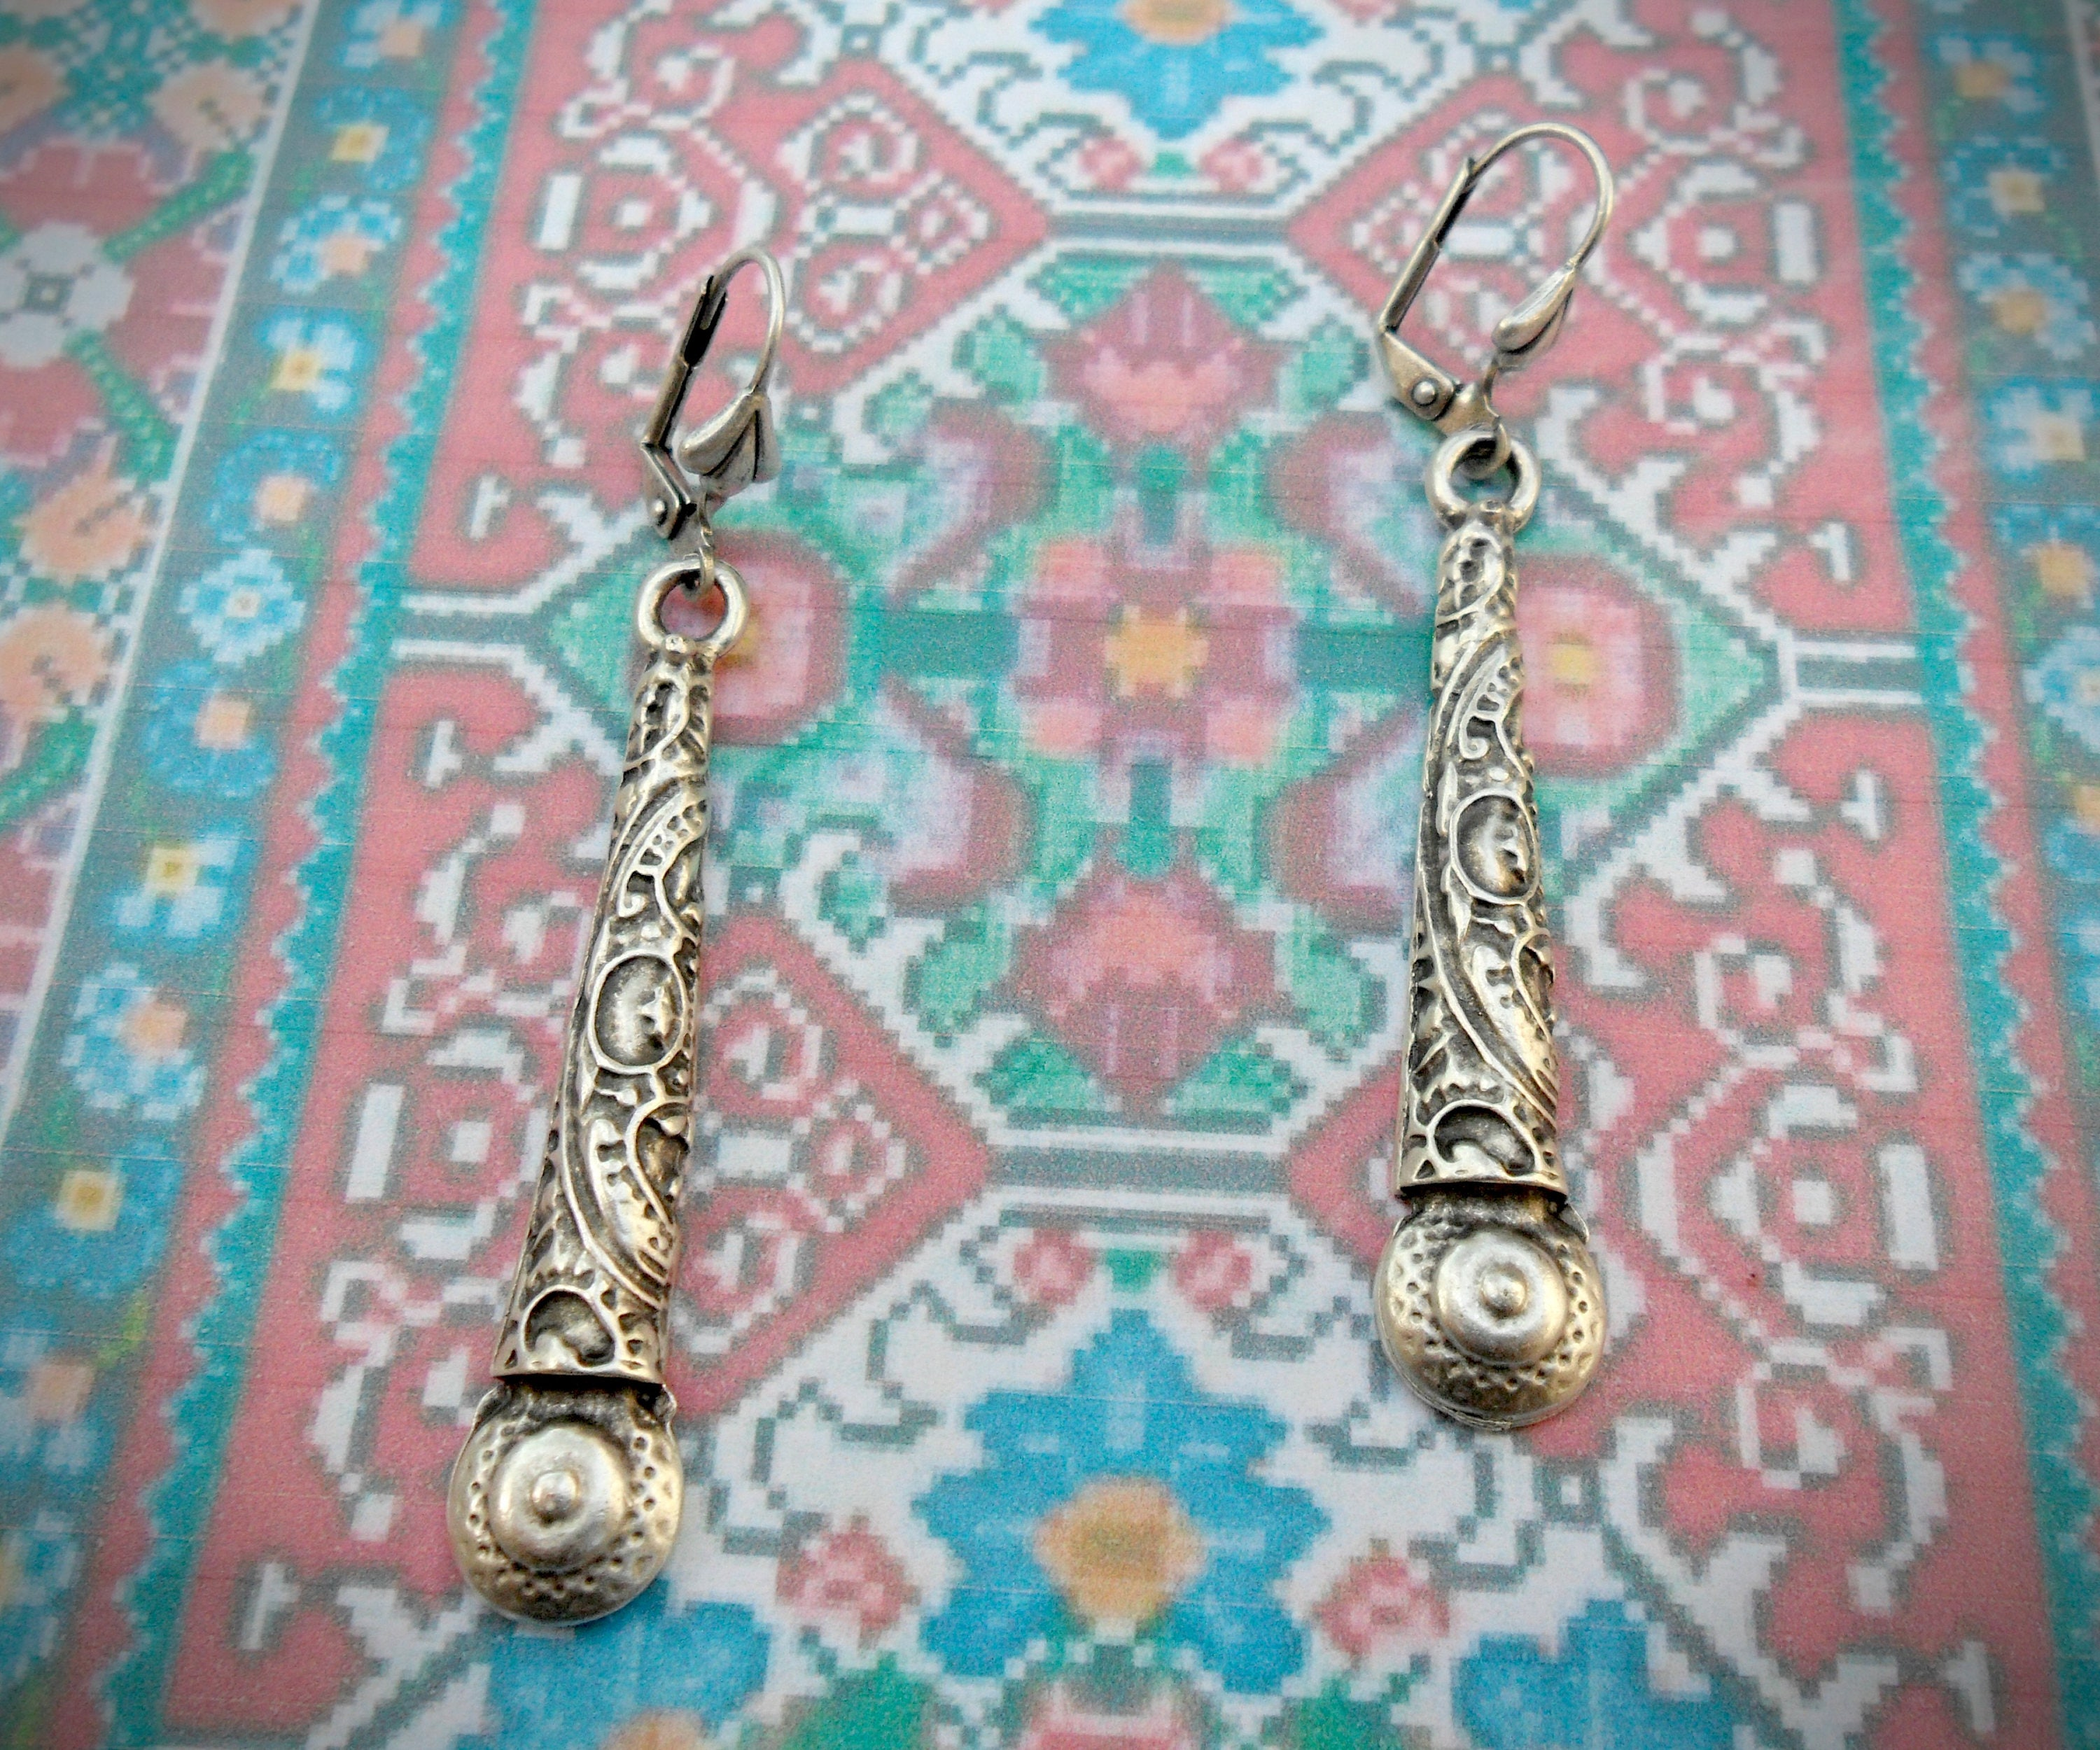 Long teardrop earrings oxidized silver plated antique silver ethnic pattern boho earrings leverback hooks drop earrings tribal look